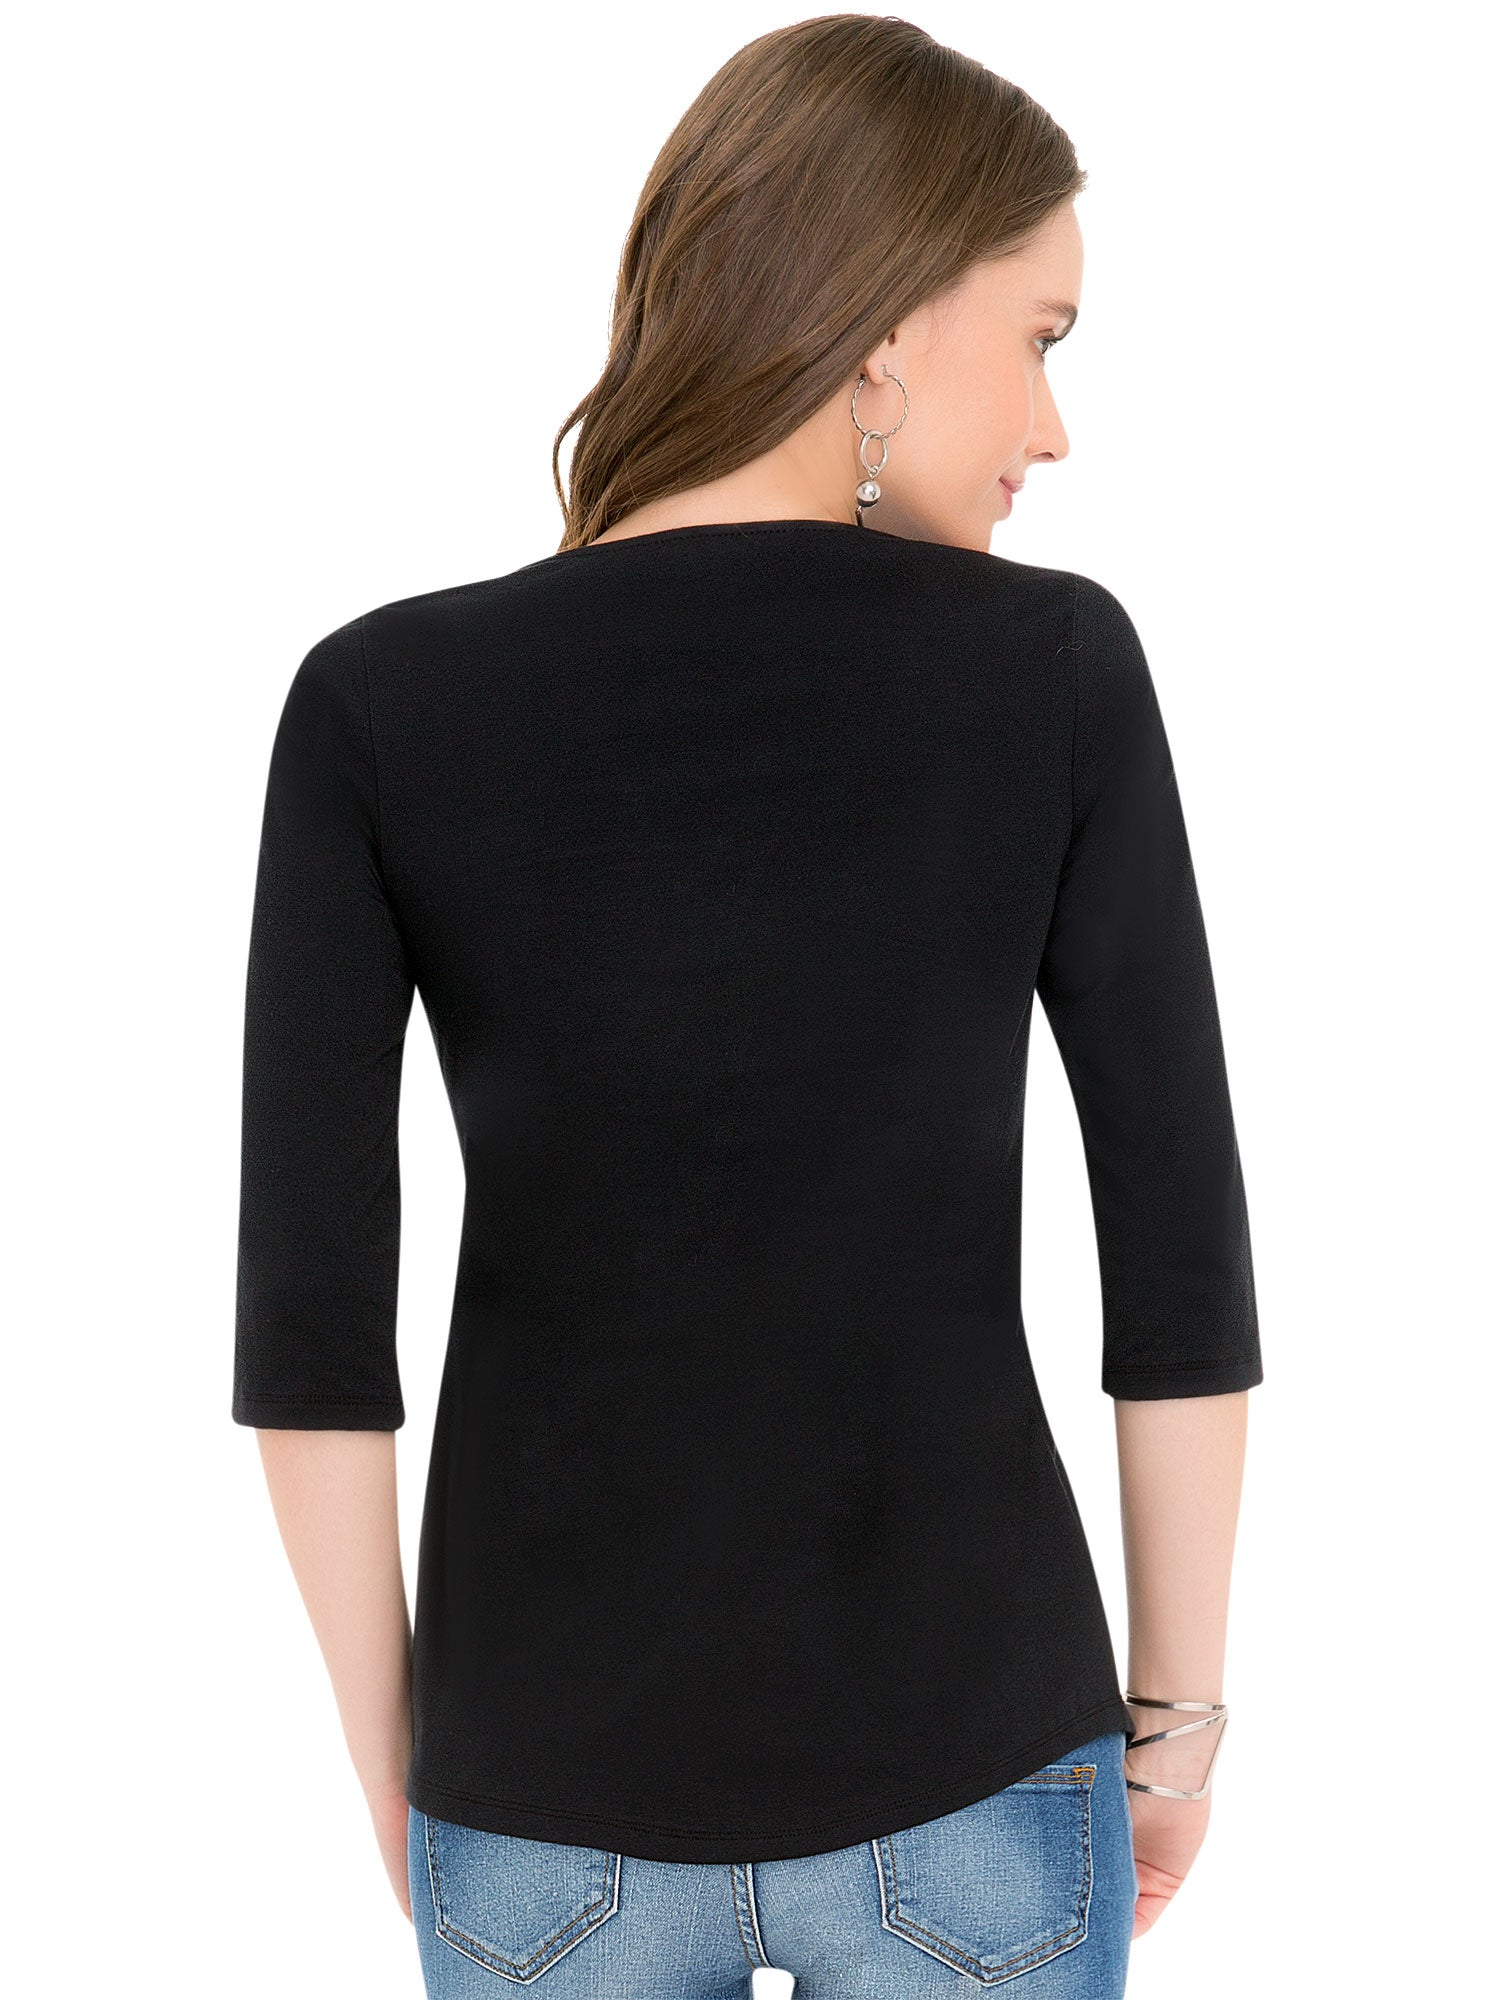 String Cross 3/4 Sleeve Top 43934